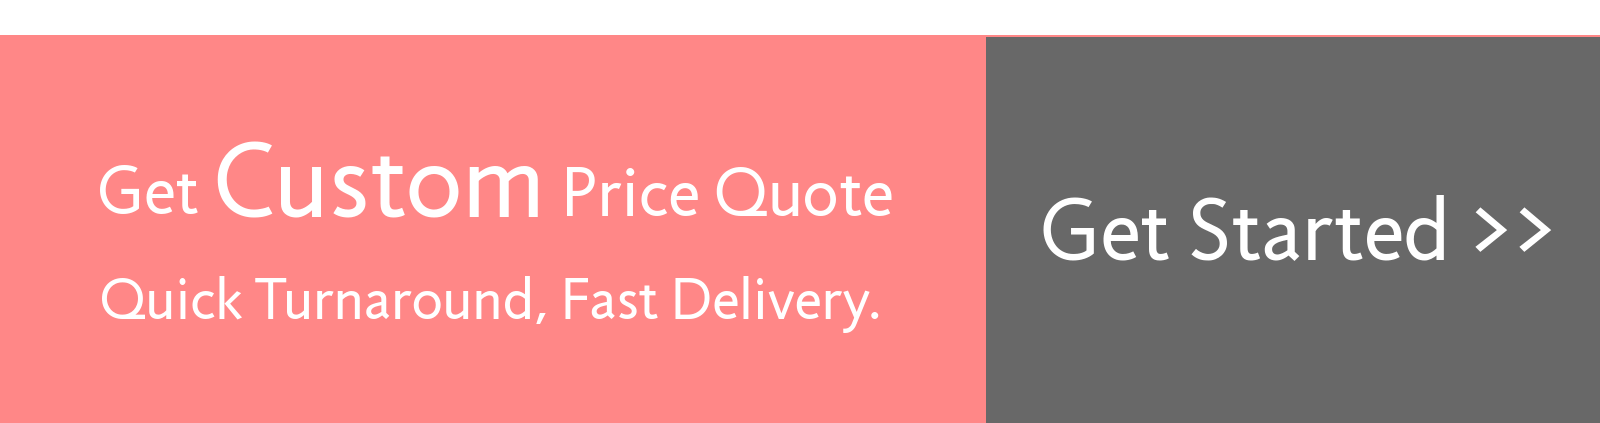 Get Custom Price Quote